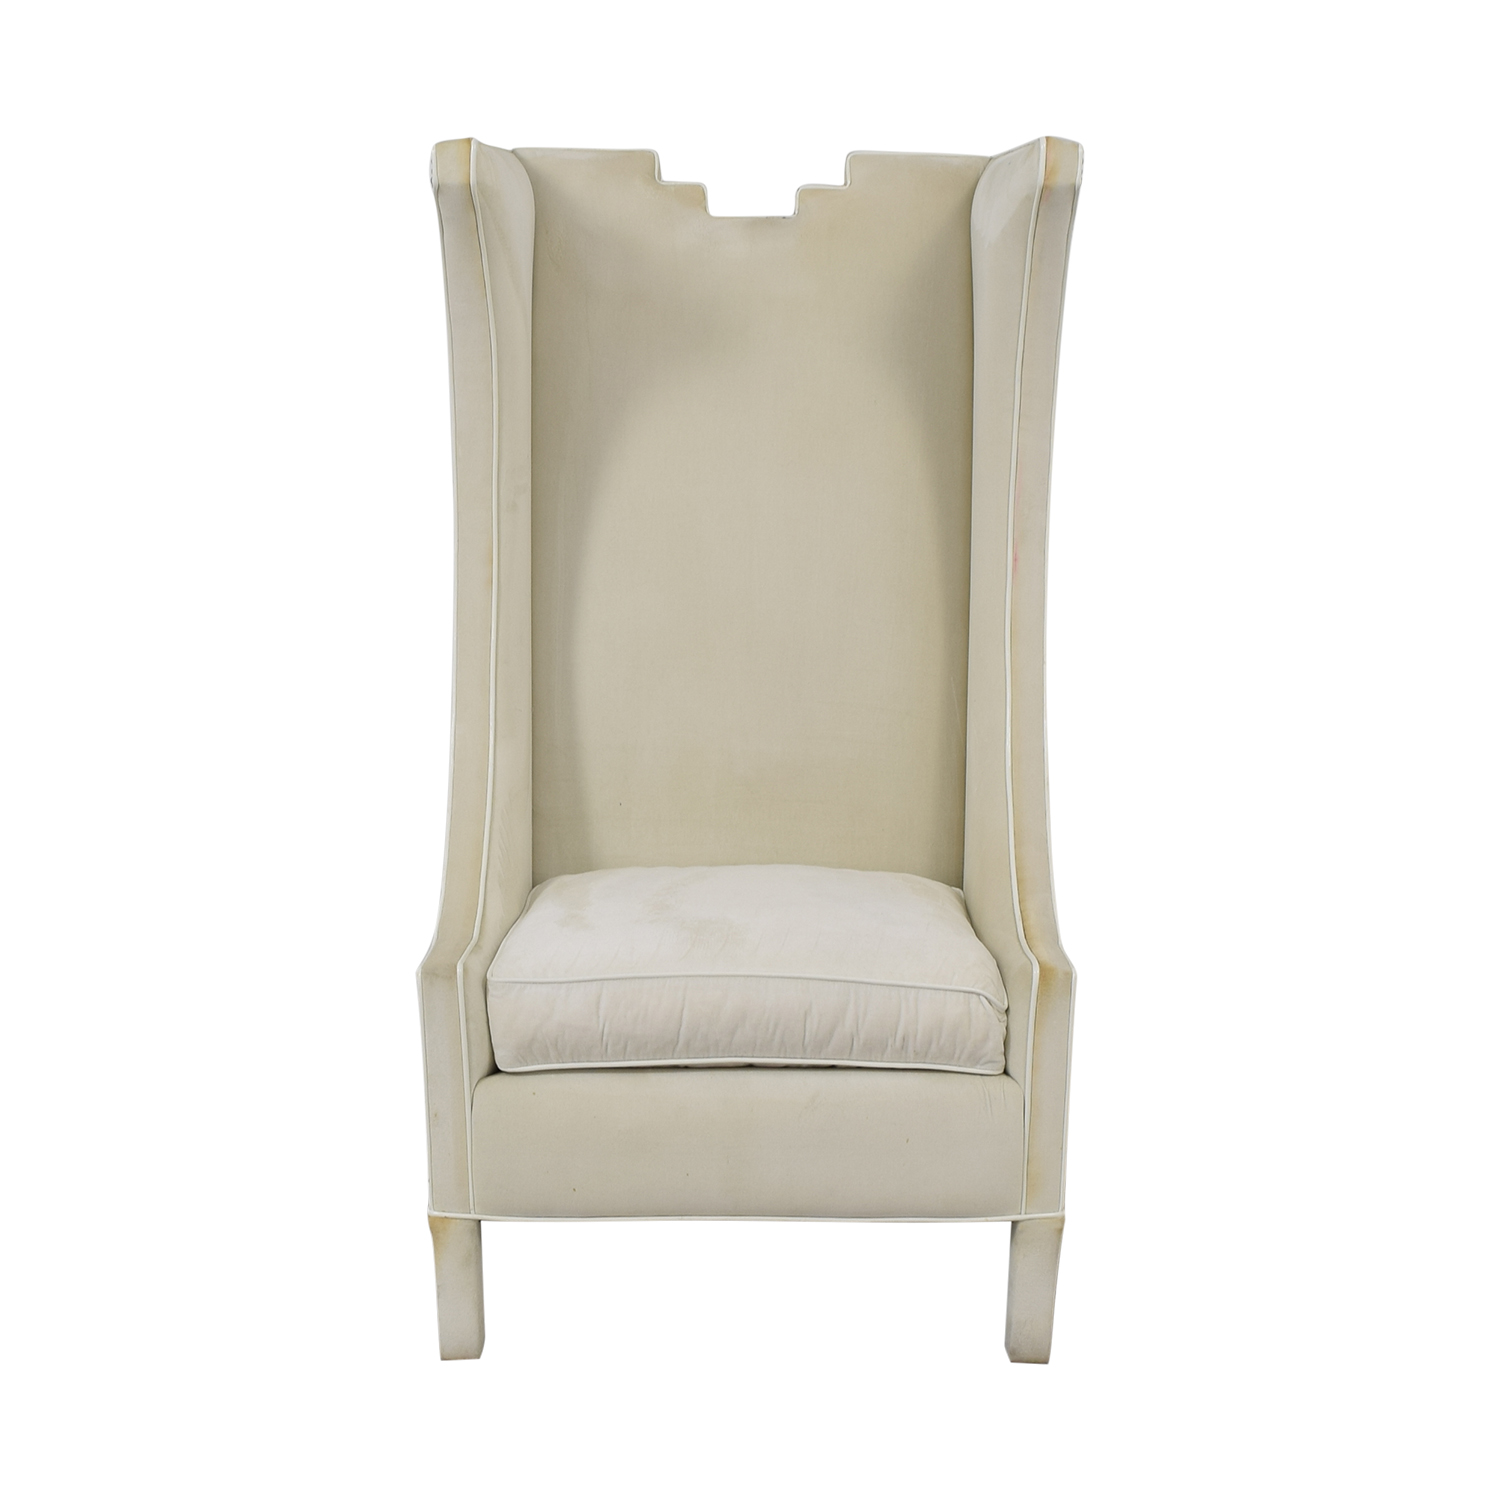 Shine by S.H.O Shine by S.H.O. Lolita High Chair Cotton Velvet and Leather Piping white